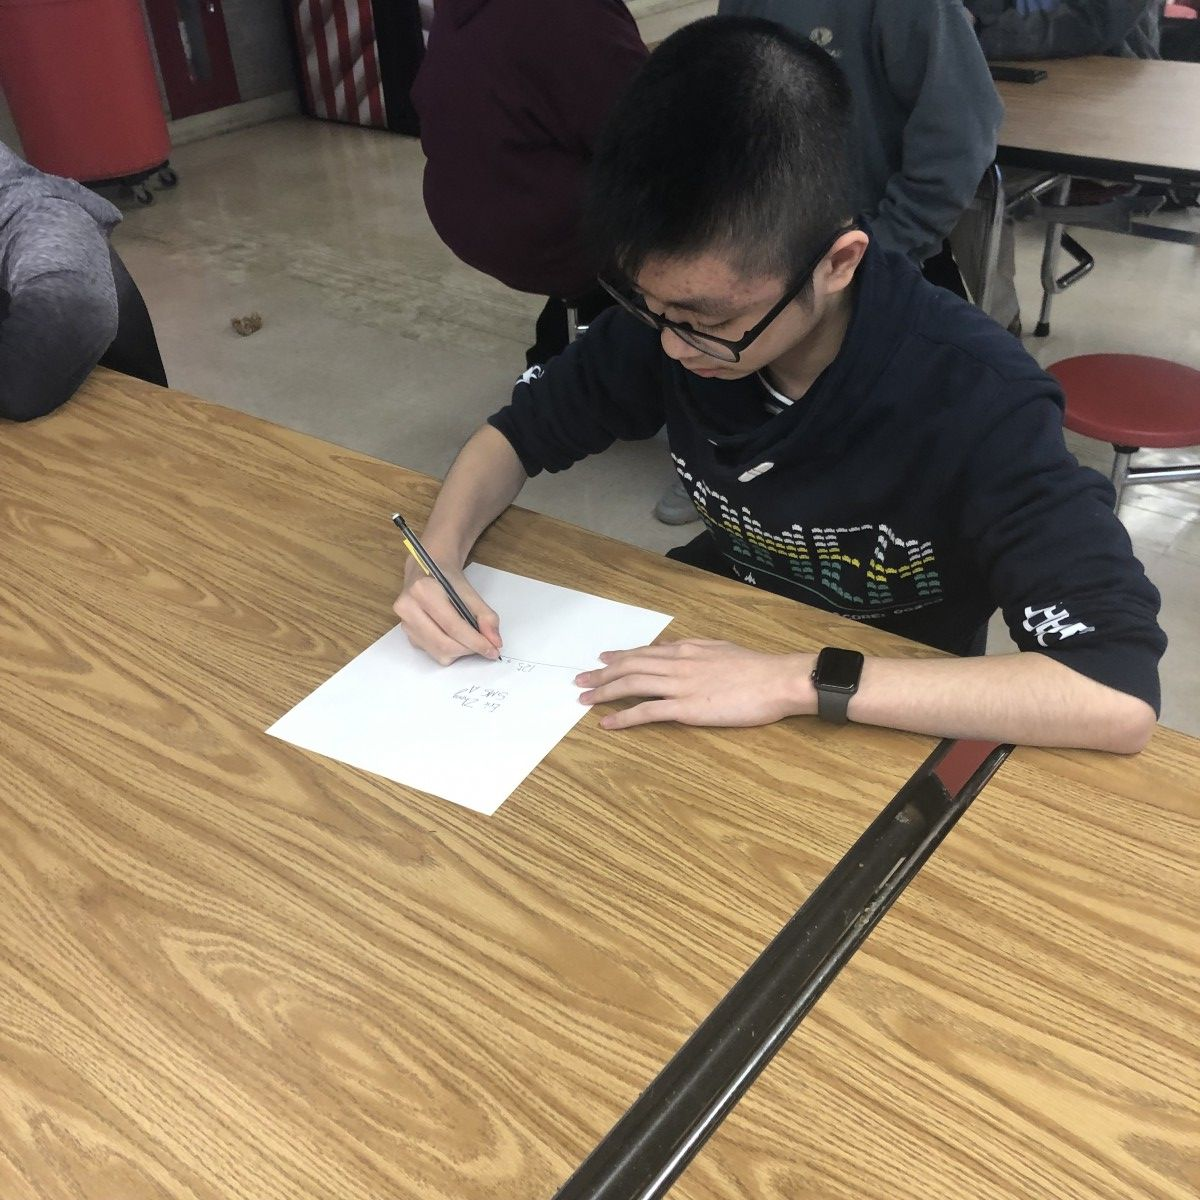 South Middle School's Eric Zheng, a 7th grade scholar received two individual awards.  He had the most points for questions participated in in the entire league of all four sections.     Eric also received the highest percentage correct answers in section A, with 76% correct.